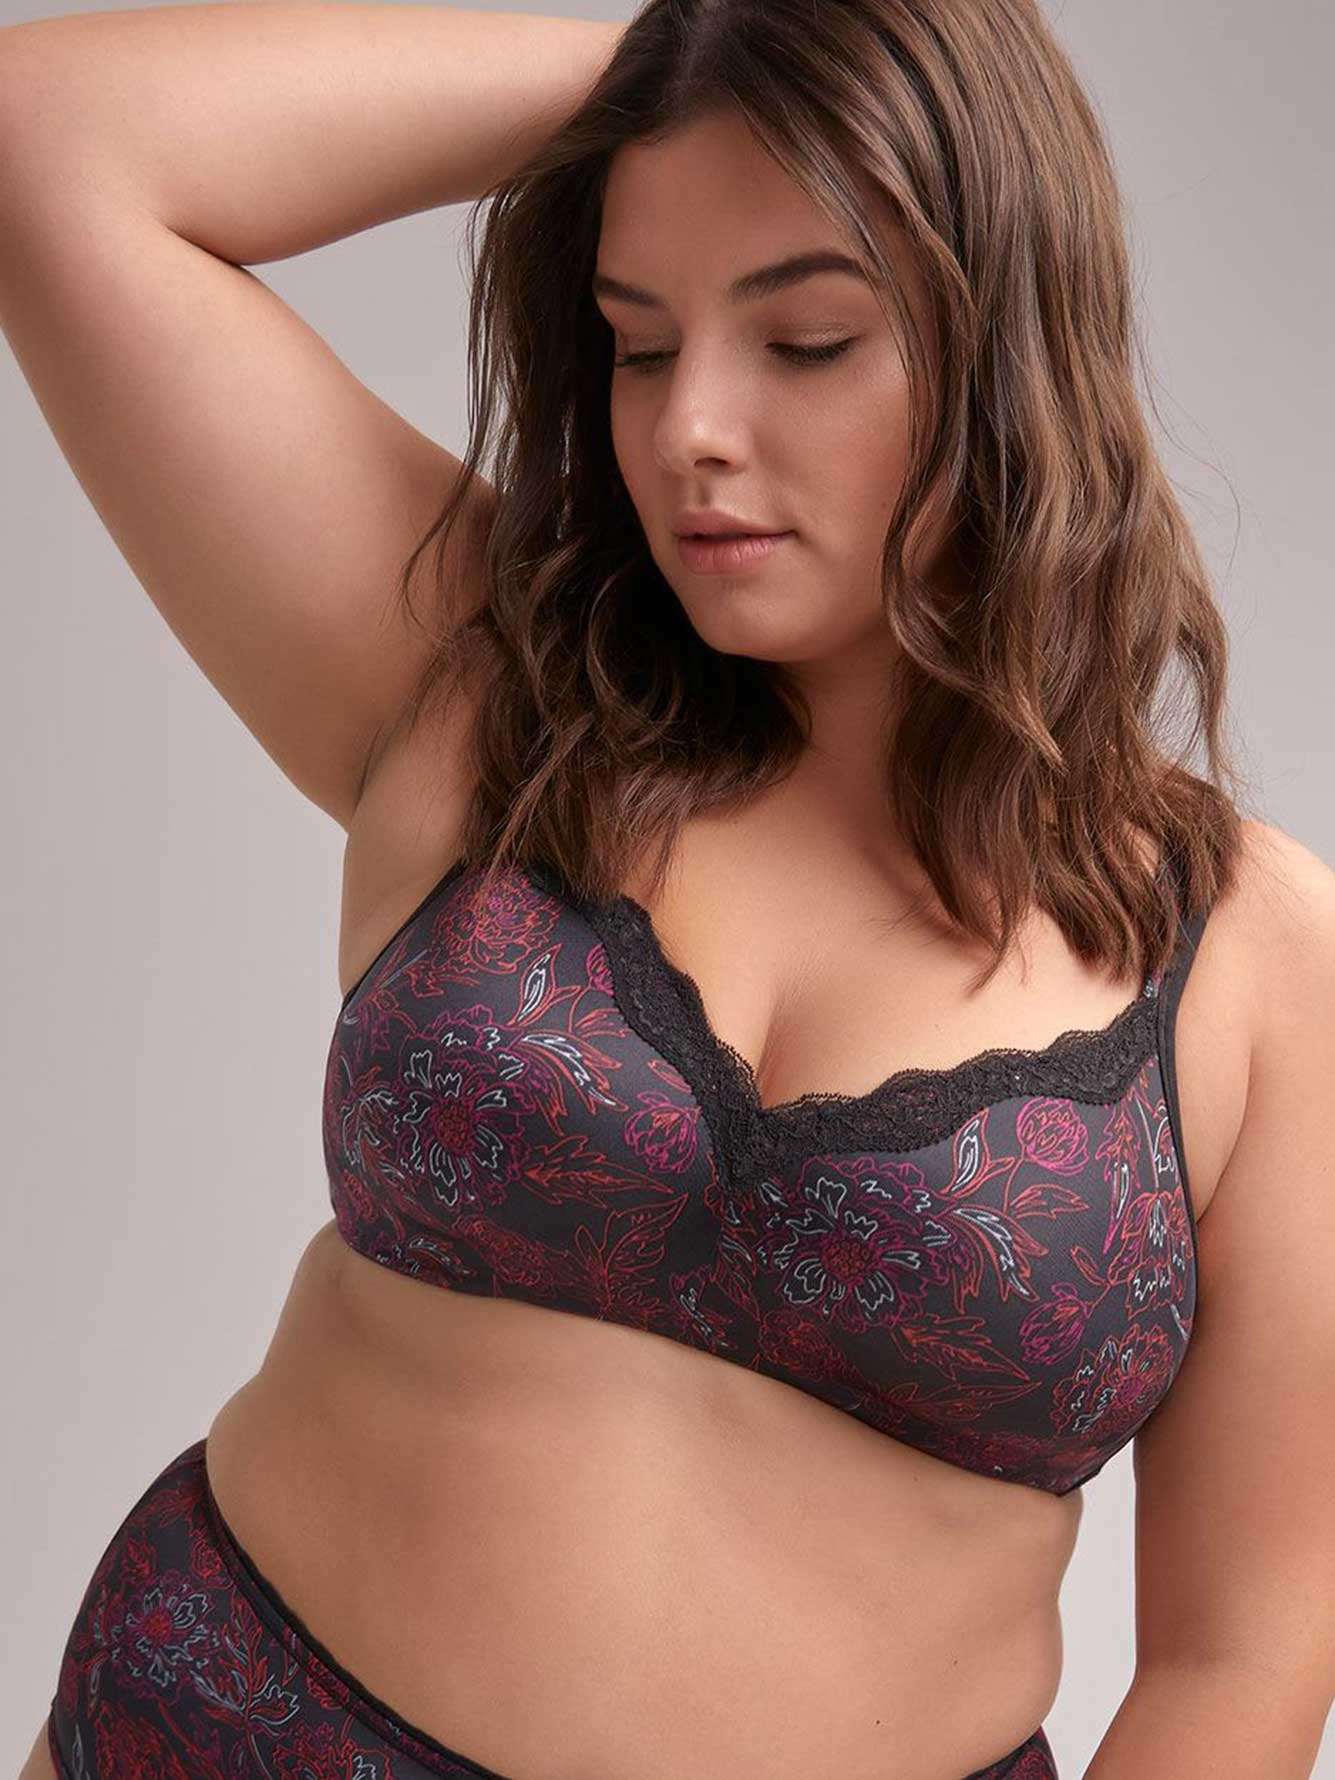 083376a954 Floral Padded Wirefree Bra with Lace